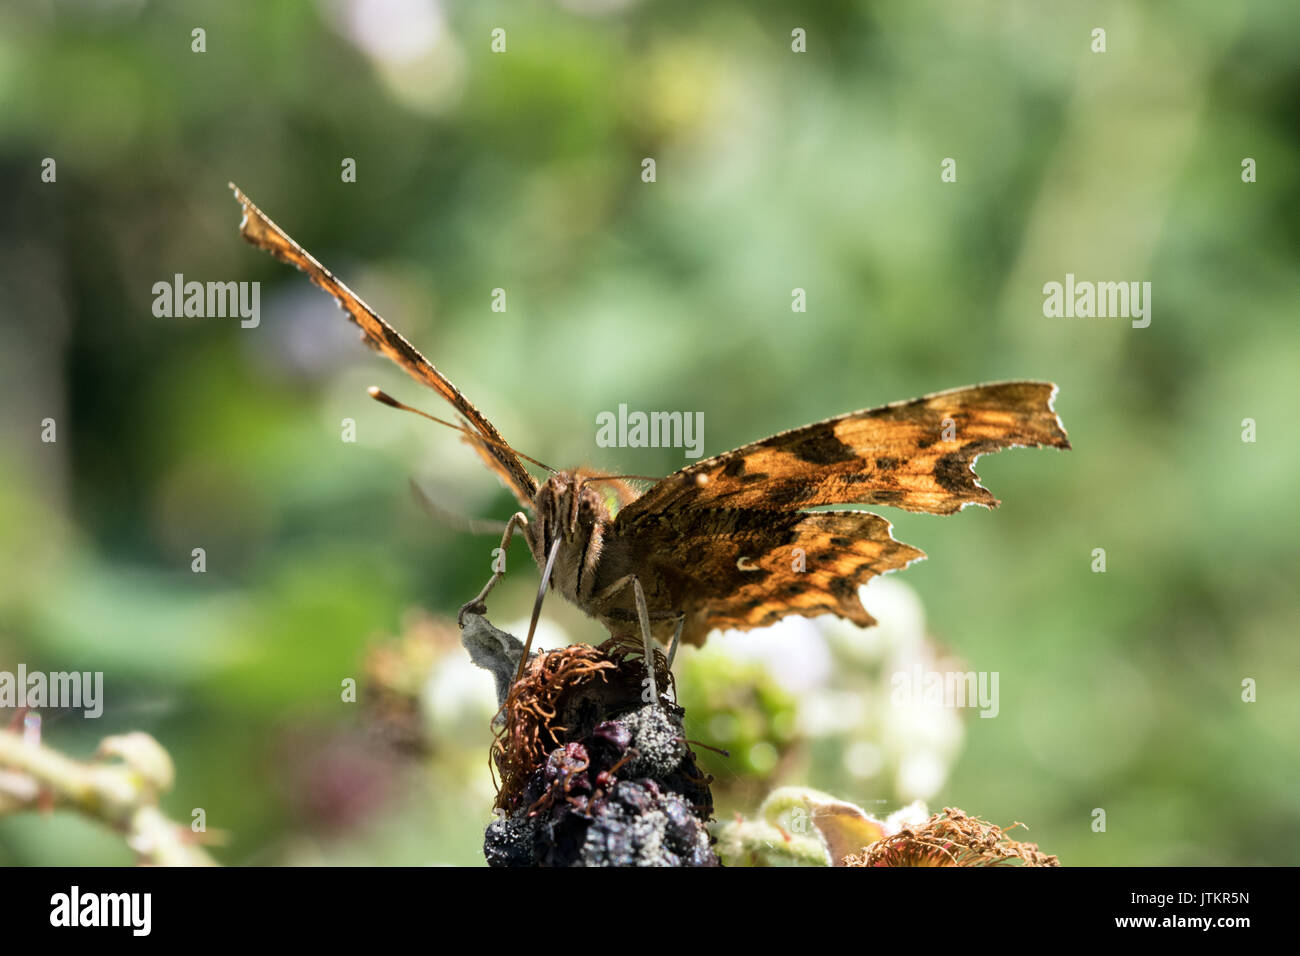 Comma butterfly (Polygonia c-album) feeding on blackberry. Stock Photo